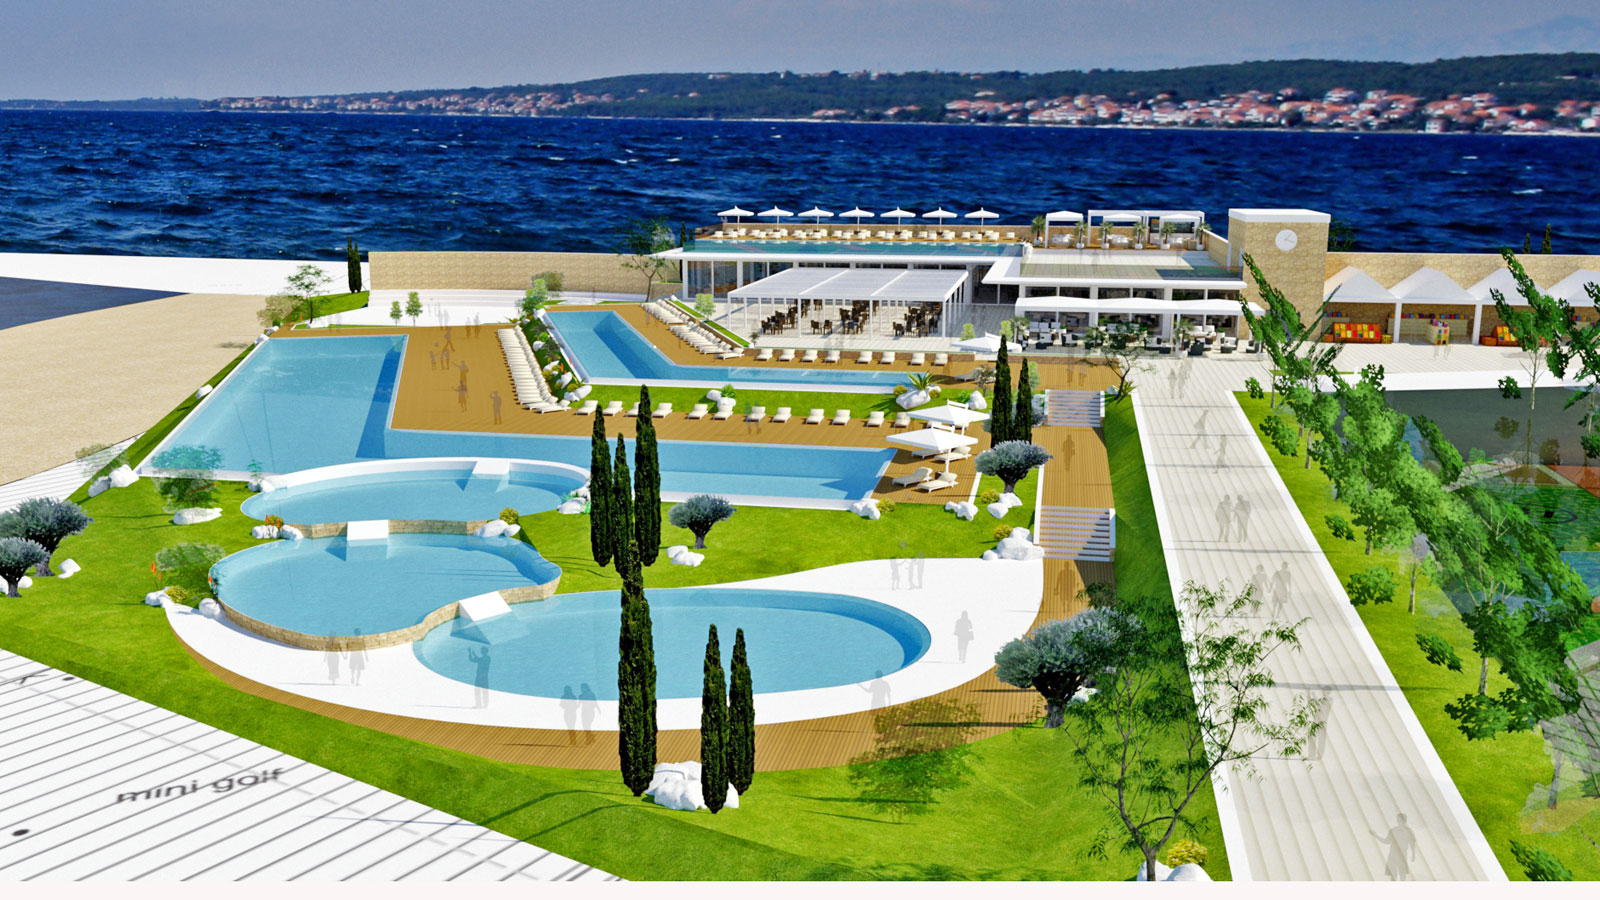 Falkensteiner holiday village master plan borik - zadar